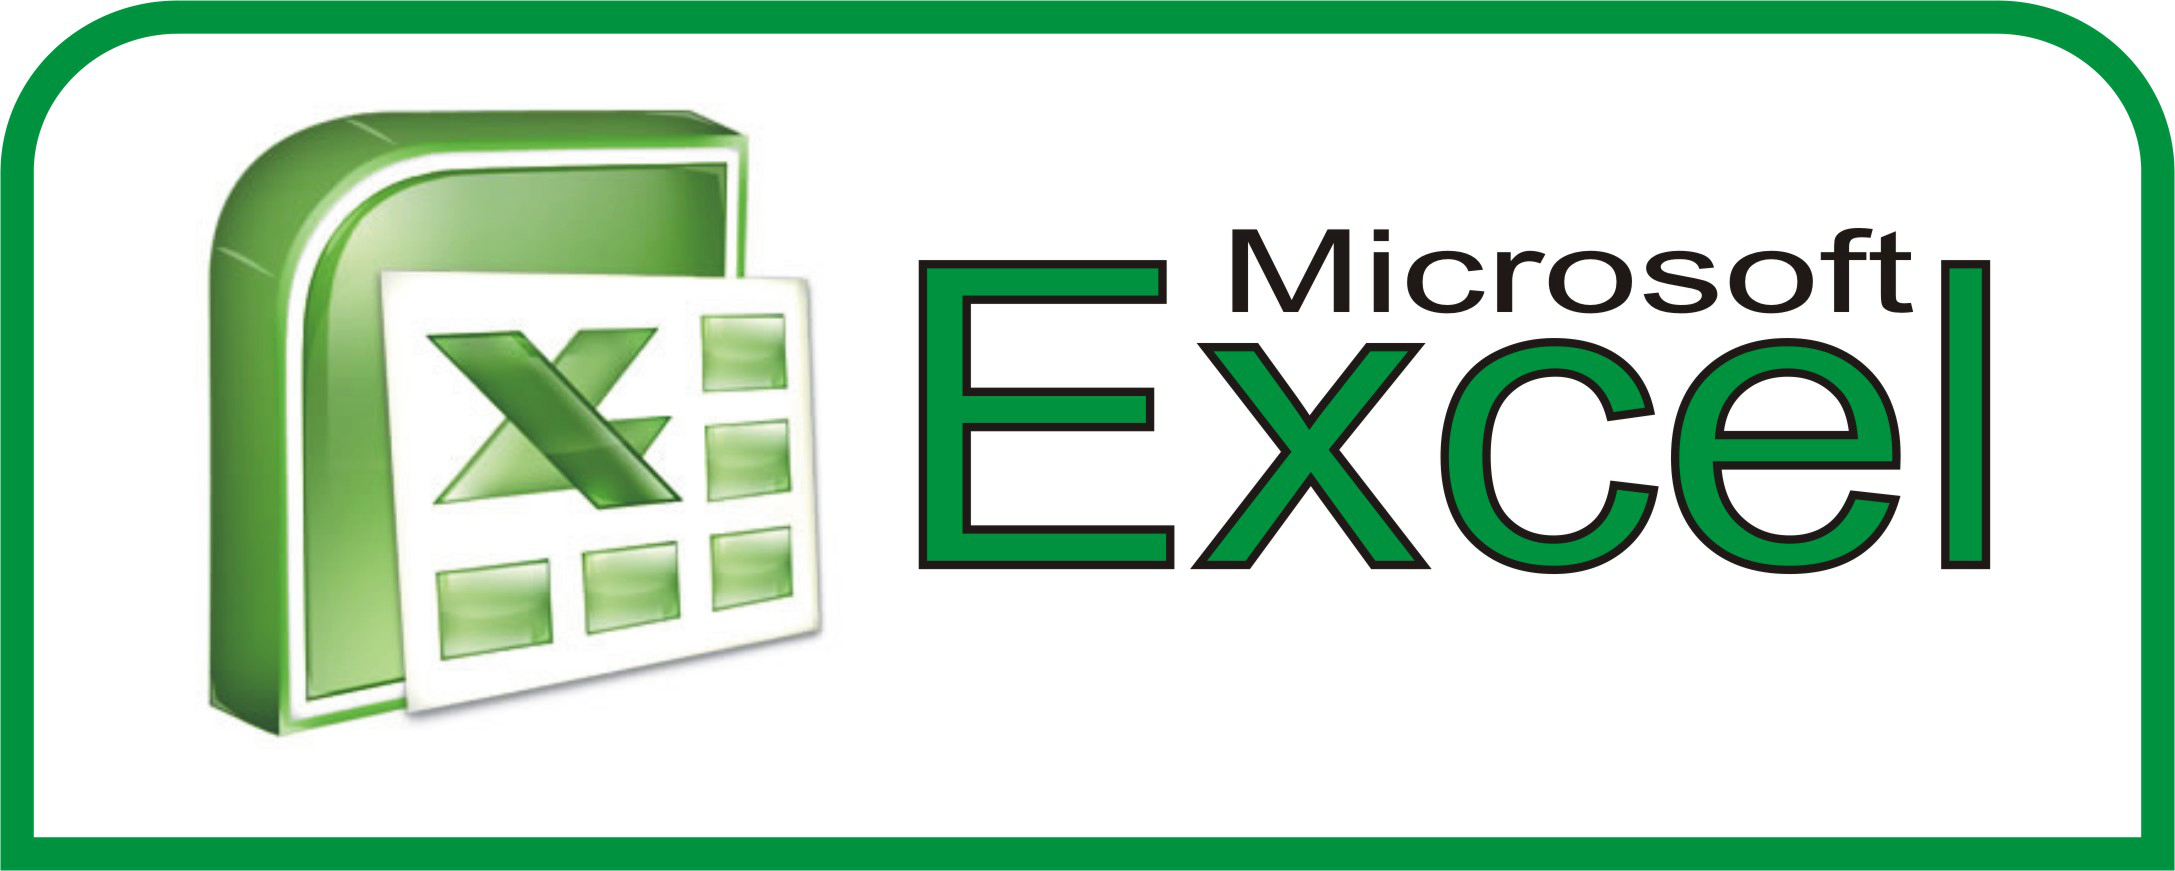 Ediblewildsus  Seductive  Excel Shortcuts You Probably Didnt Know About  Techdissected With Fair Excel Tricks  Besides Excel Spreadsheet Definition Furthermore Daily Schedule Excel With Delectable Excel Driving School San Jose Also Excel Highlight Column In Addition Excel Create Drop Down Menu And Excel Variance Function As Well As Excel Hide Formula Additionally New Features In Excel  From Techdissectedcom With Ediblewildsus  Fair  Excel Shortcuts You Probably Didnt Know About  Techdissected With Delectable Excel Tricks  Besides Excel Spreadsheet Definition Furthermore Daily Schedule Excel And Seductive Excel Driving School San Jose Also Excel Highlight Column In Addition Excel Create Drop Down Menu From Techdissectedcom